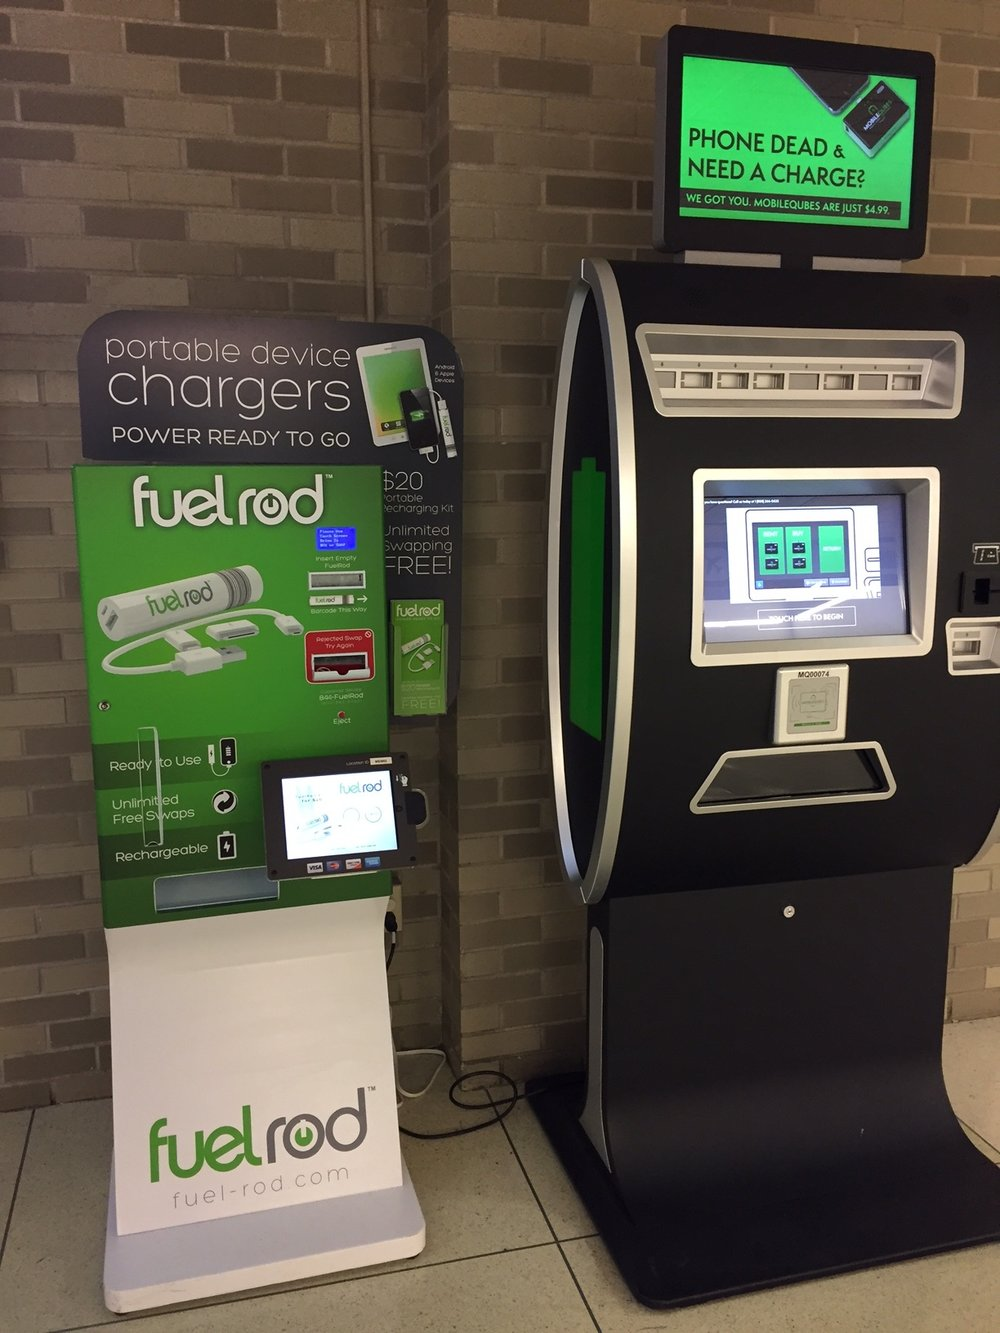 Some examples of existing charging stations.